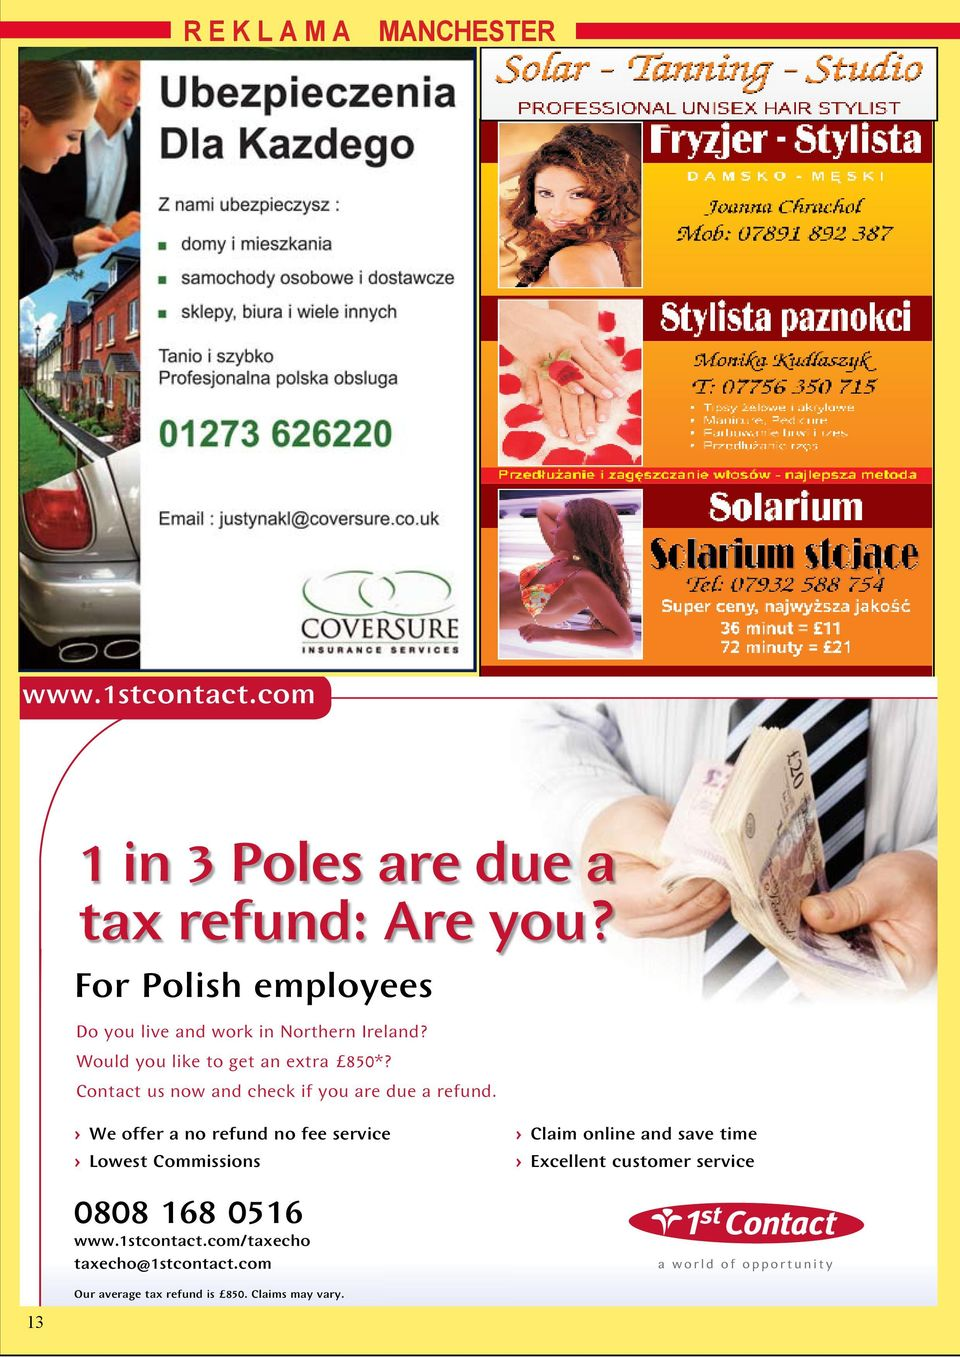 Contact us now and check if you are due a refund.